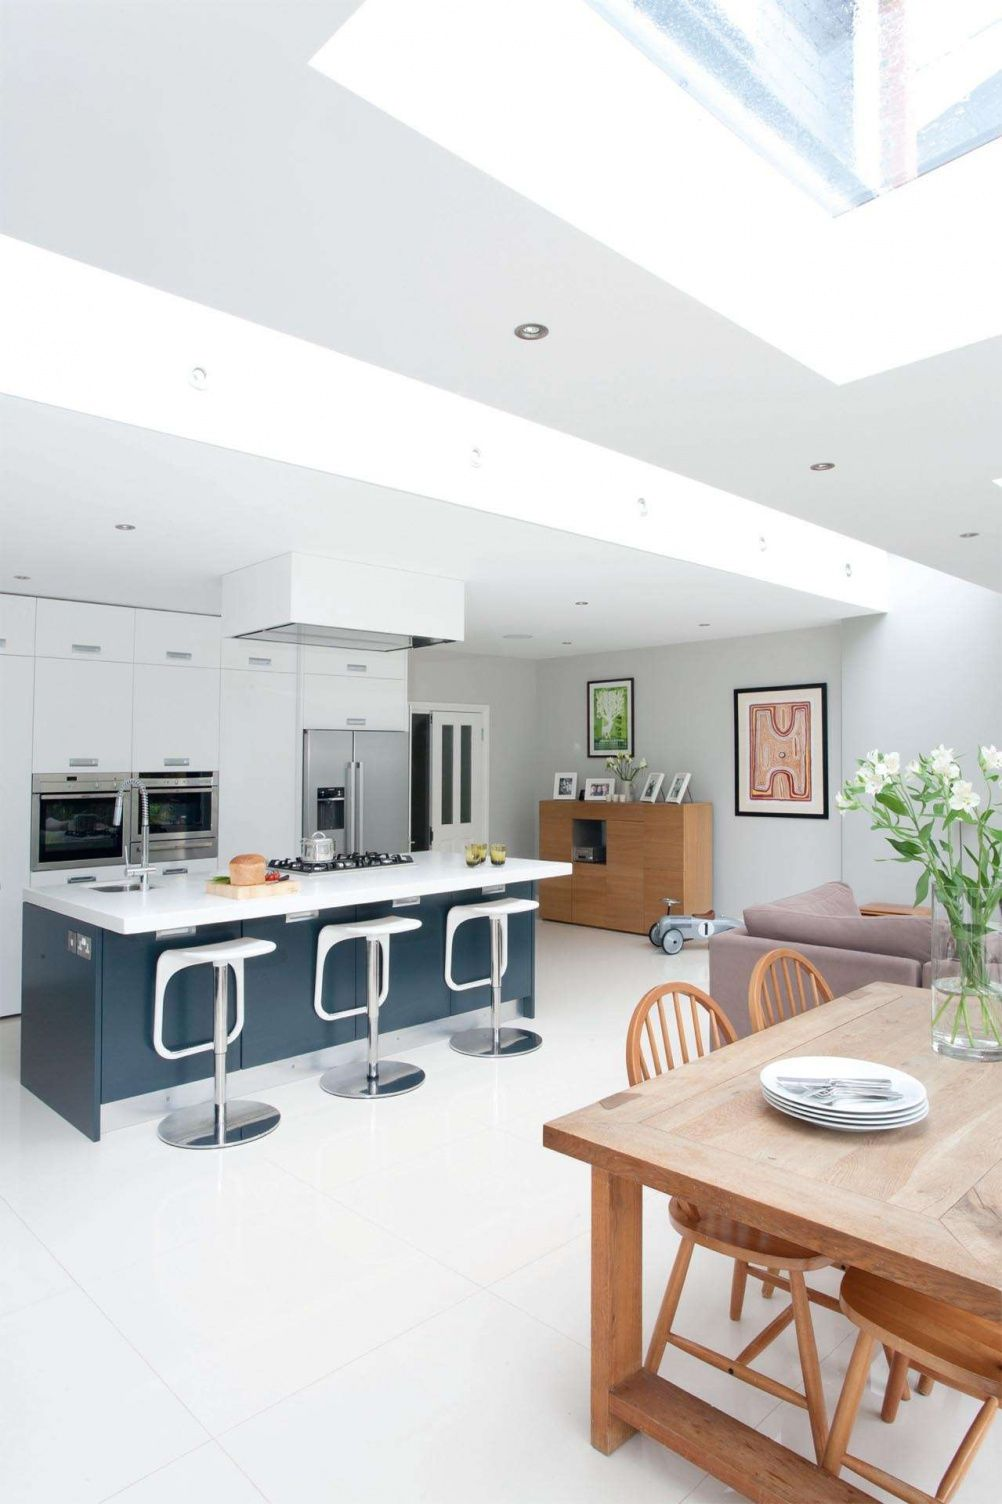 How To Add A Single Storey Extension Open Plan Kitchen Living